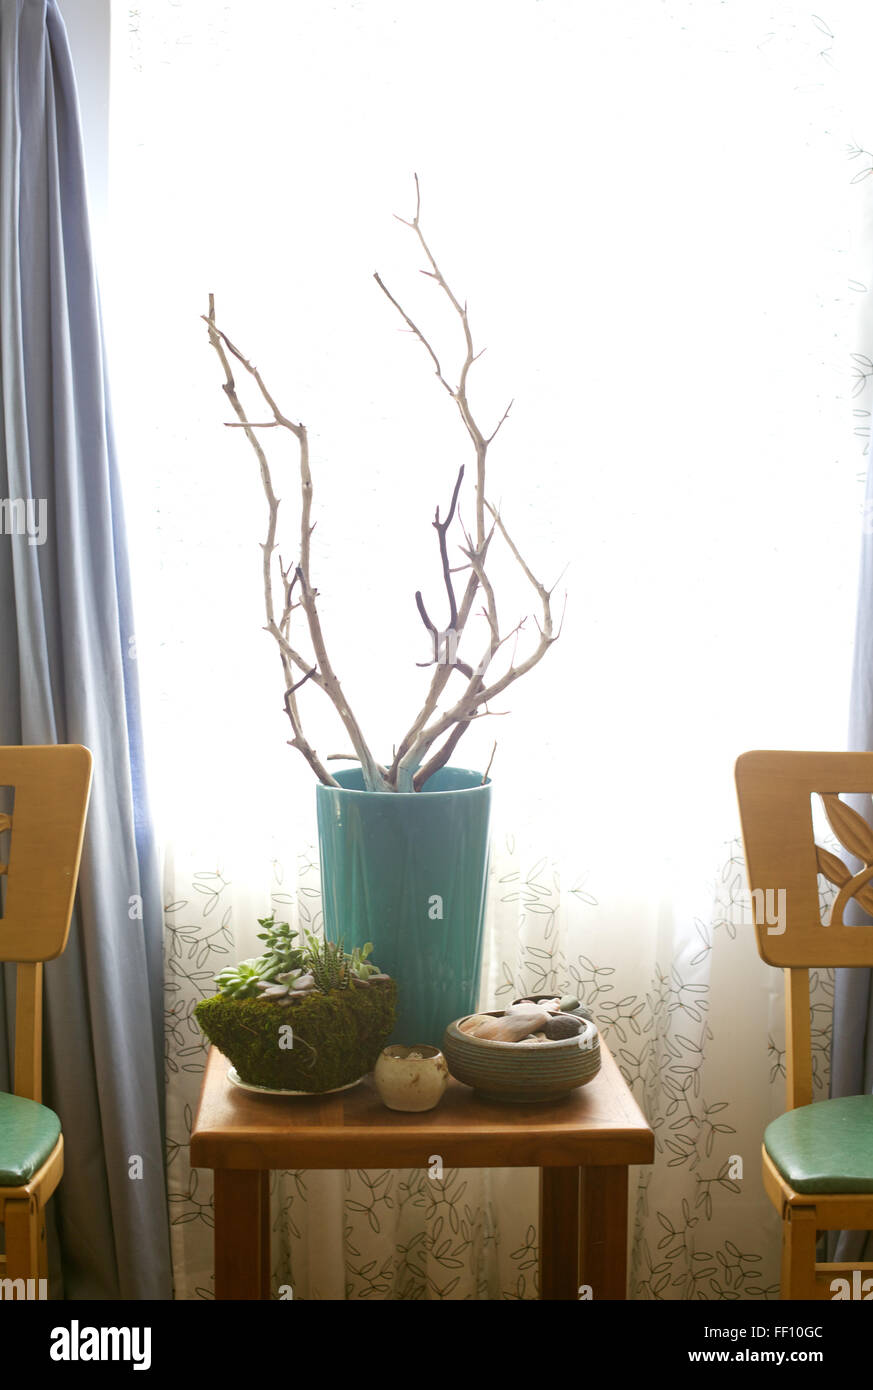 A home interior, two vintage chairs and an arrangement of vases and plants on display in front of a window. - Stock Image